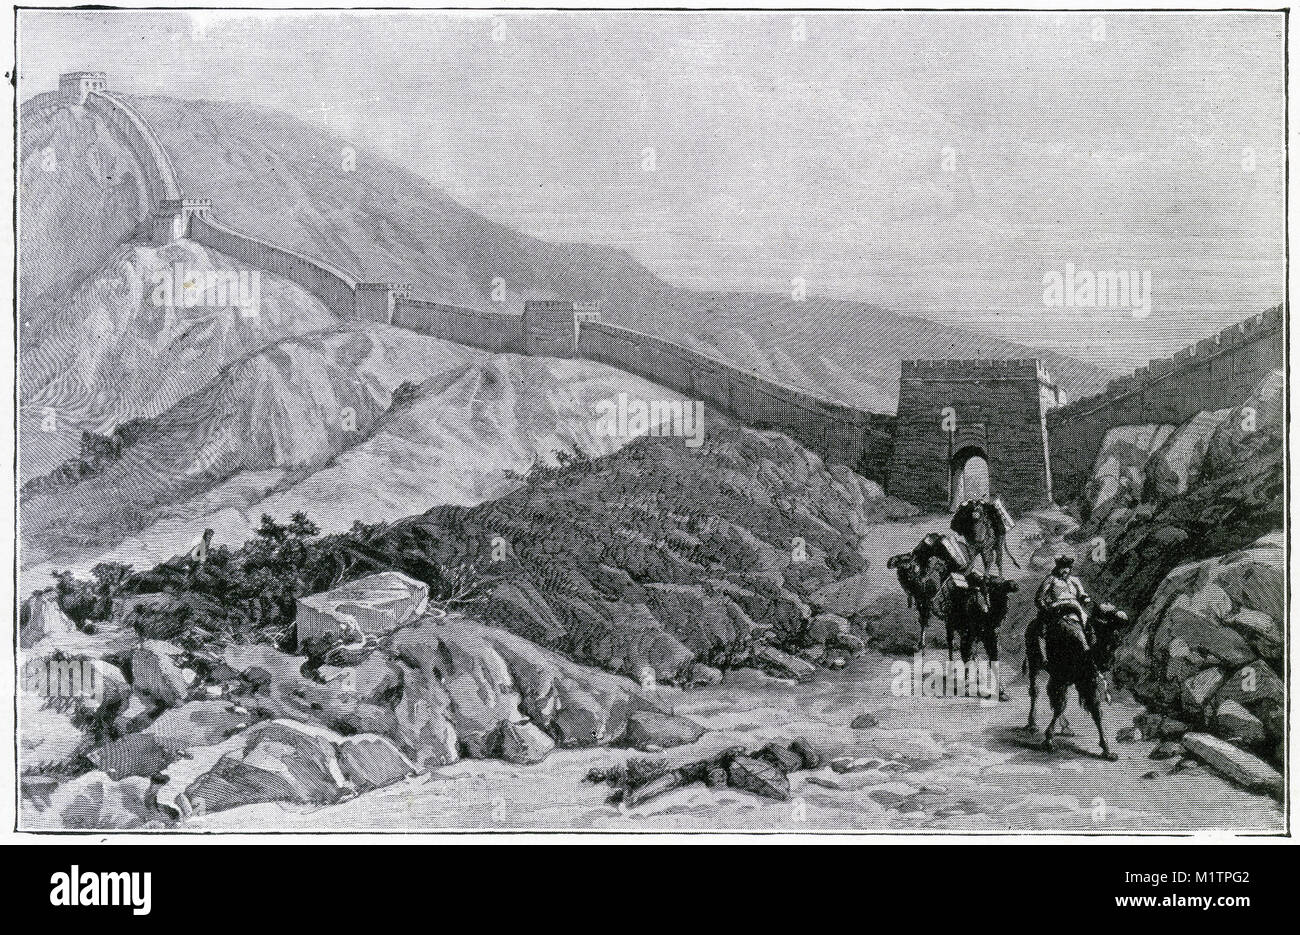 Halftone illustration of the Great Wall of China, circa 1900. From an original image in How Other People Live by - Stock Image